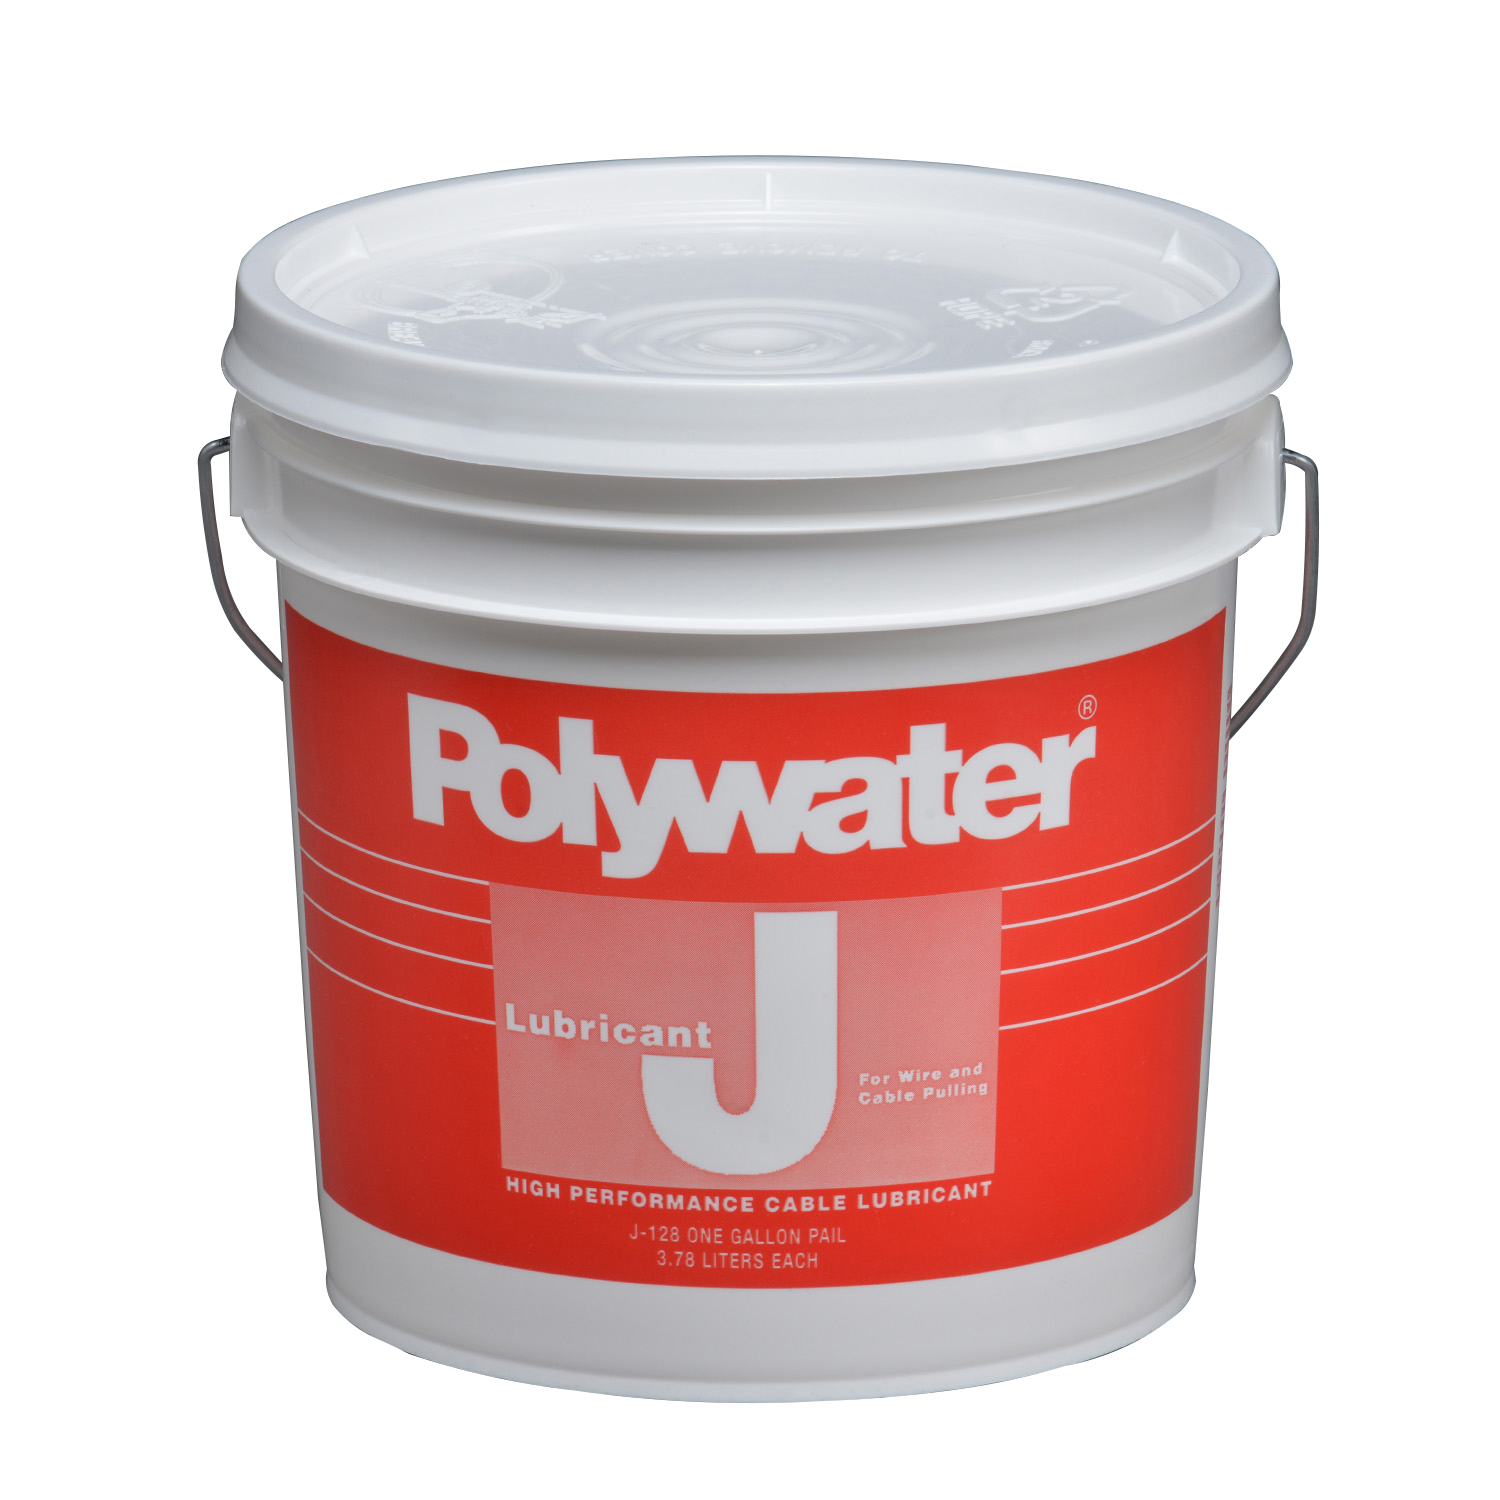 POLYWATER J128 ONE GALLON WIRE LUBE